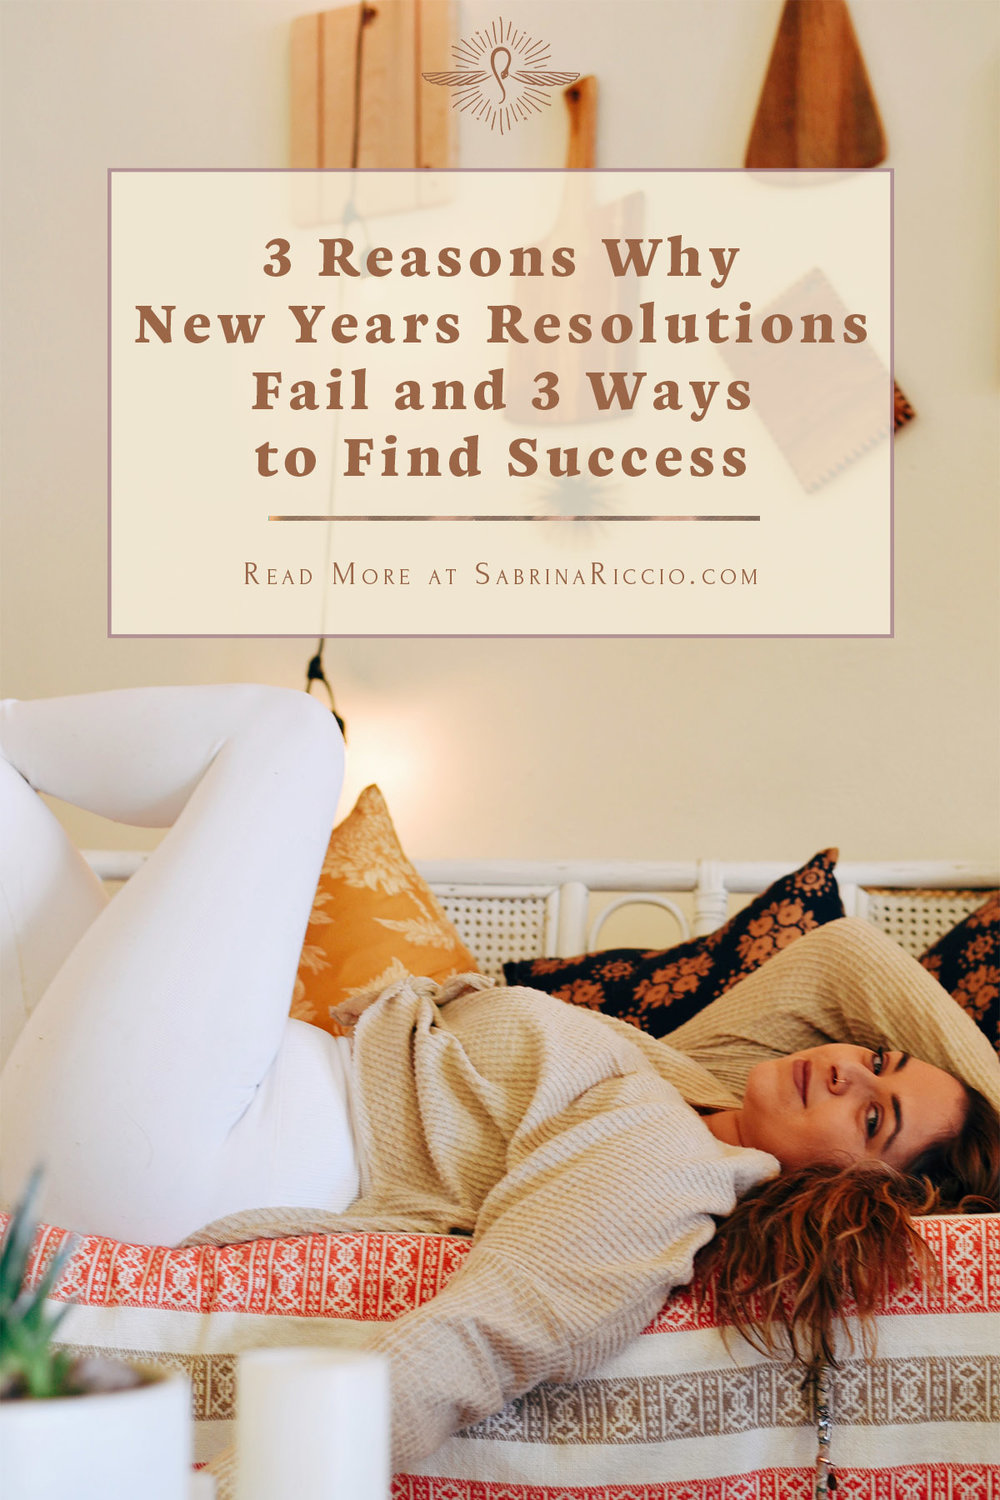 Studies show 80% of New Years Resolutions FAIL by February. Here are some tips and truths about understanding the energy of the new year and how you can work with it because instead of being a victim to the New Years Resolution pressures, you choose to be victorious. Discover More at sabrinariccio.com